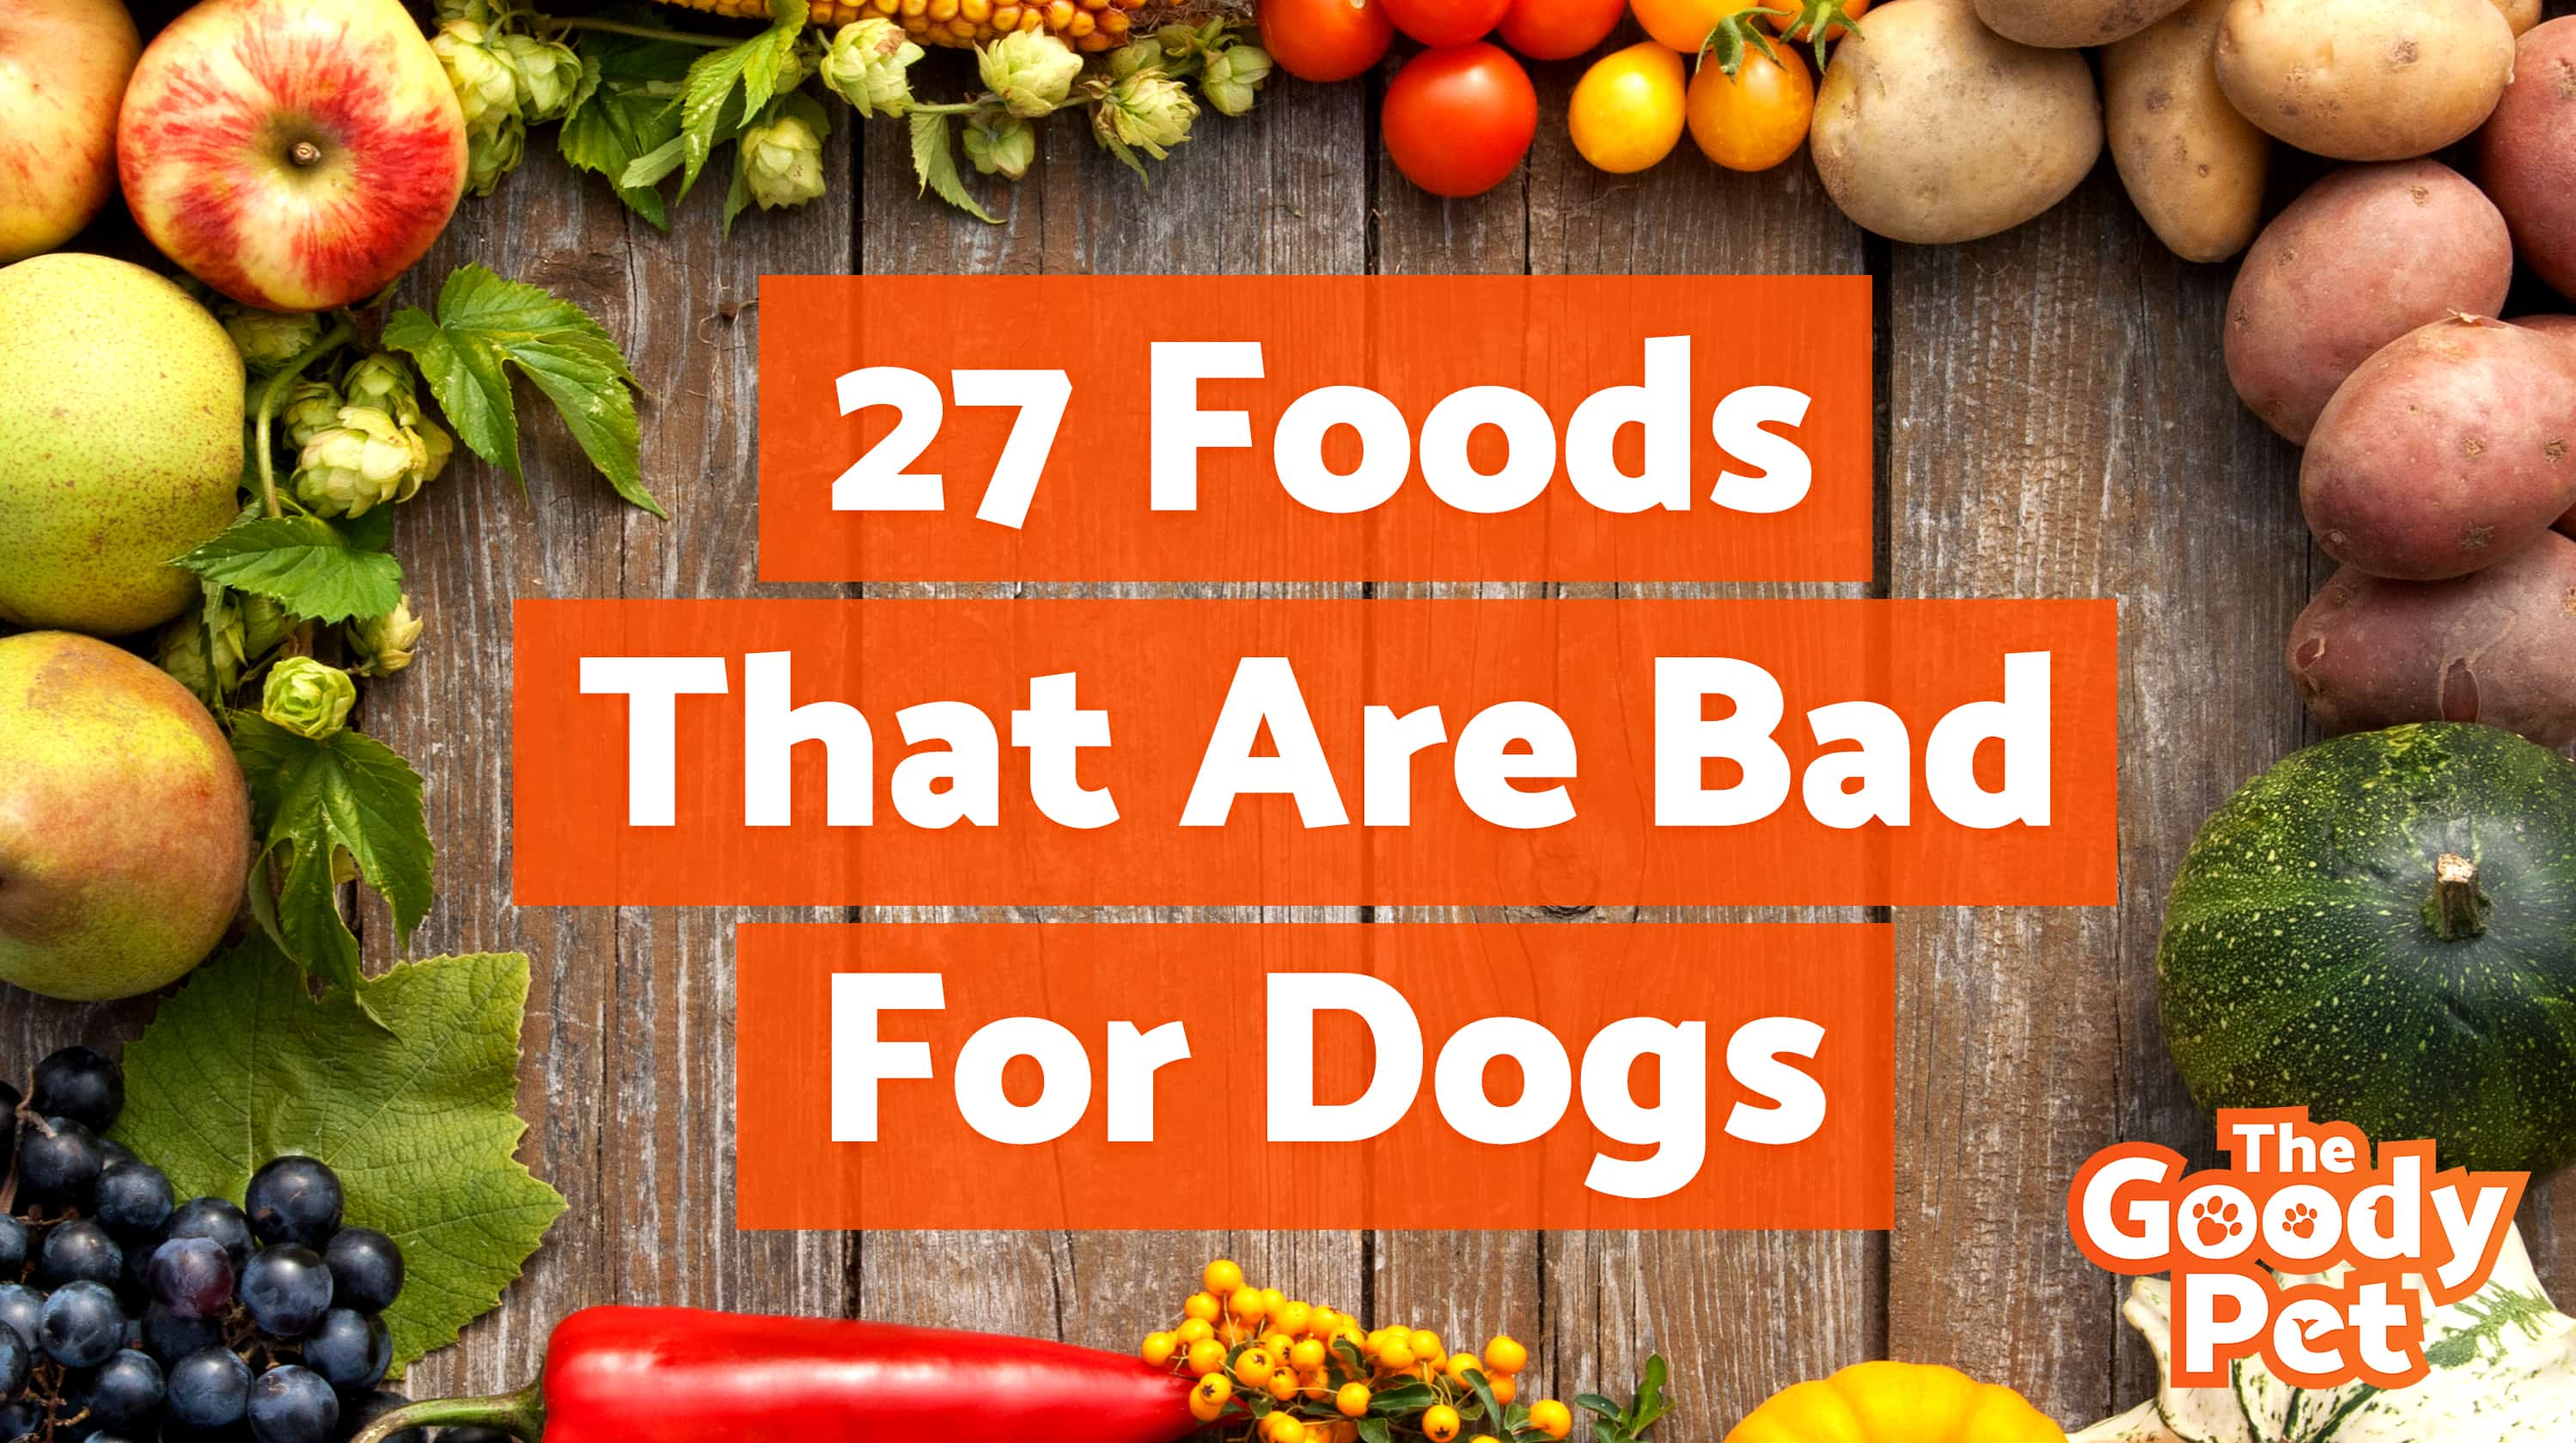 The 27 Worst Foods That Are Bad For Dogs (Warning: Toxic